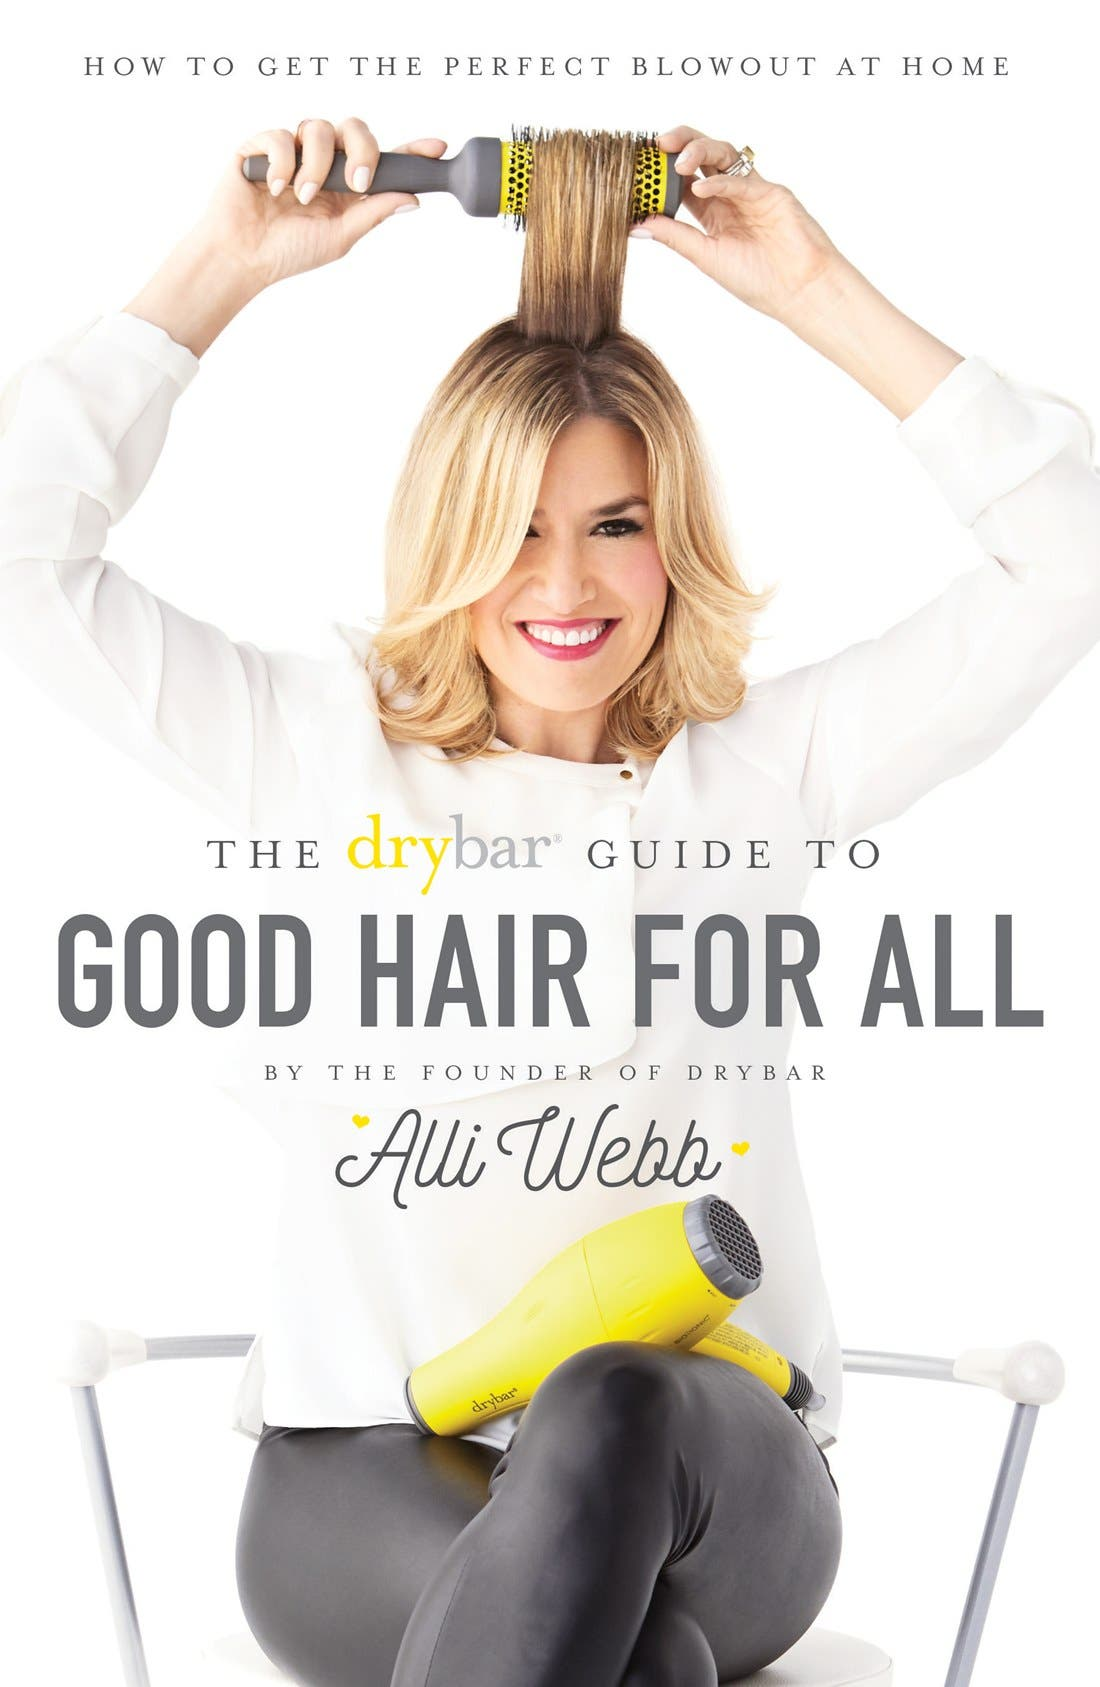 Alternate Image 1 Selected - The Drybar Guide to Good Hair for All (Limited Edition)